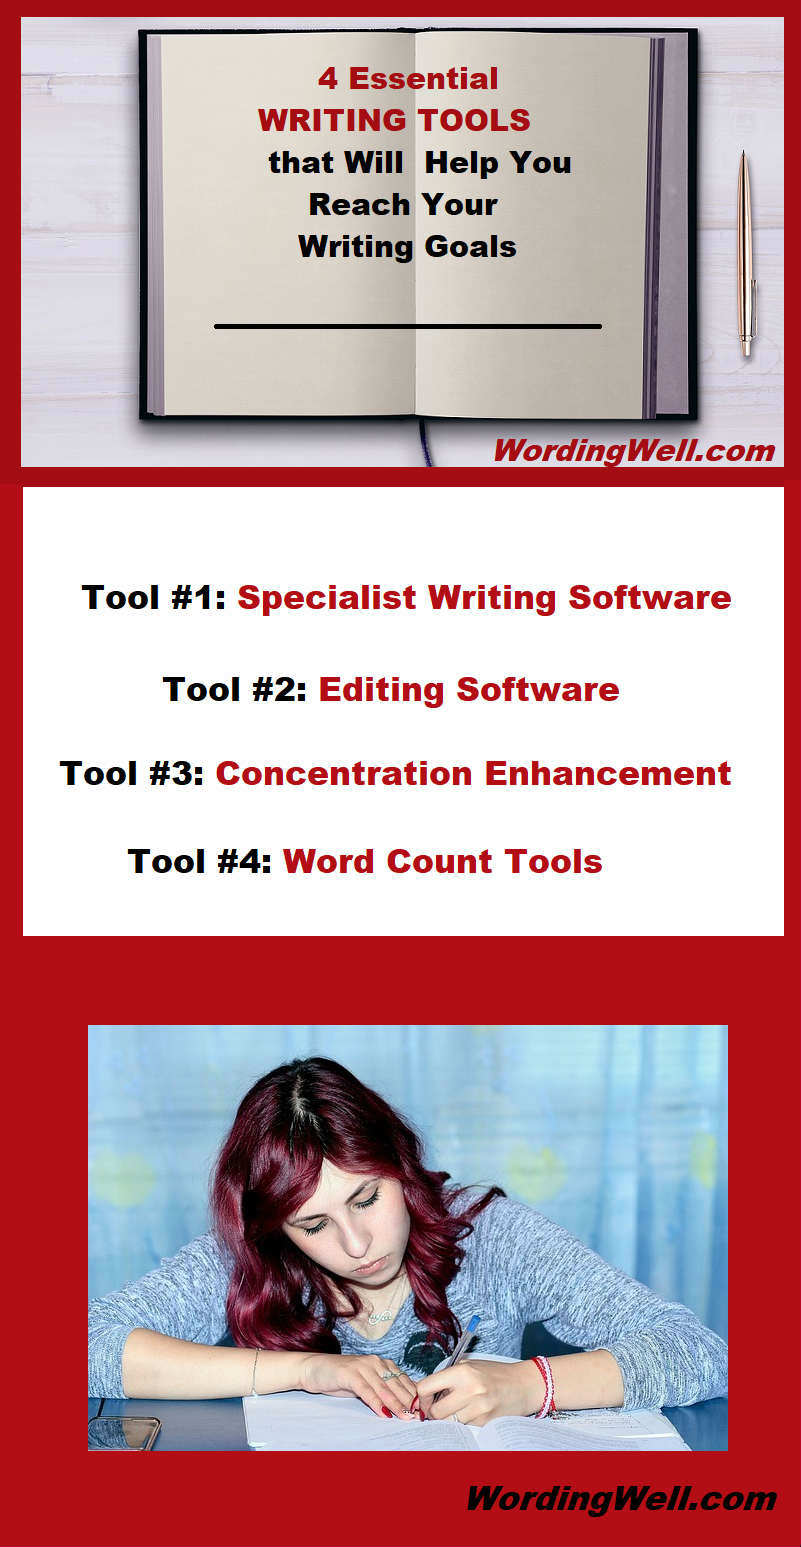 What are the different, essential tools and apps every writer needs to be successful? Read the full post on Wording Well.